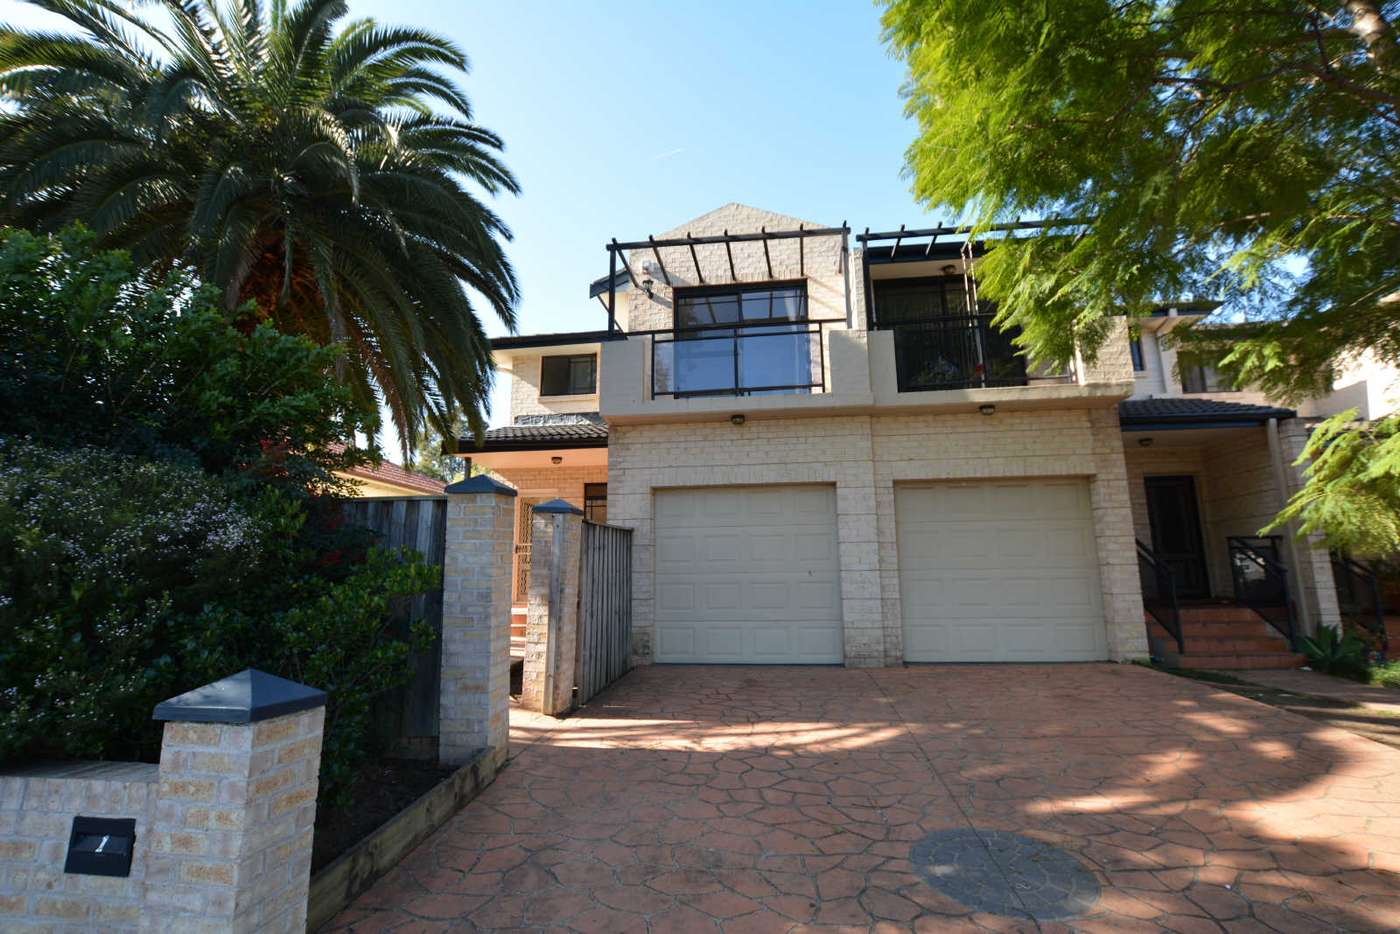 Main view of Homely house listing, 01/35 CLARENCE STREET, Merrylands, NSW 2160